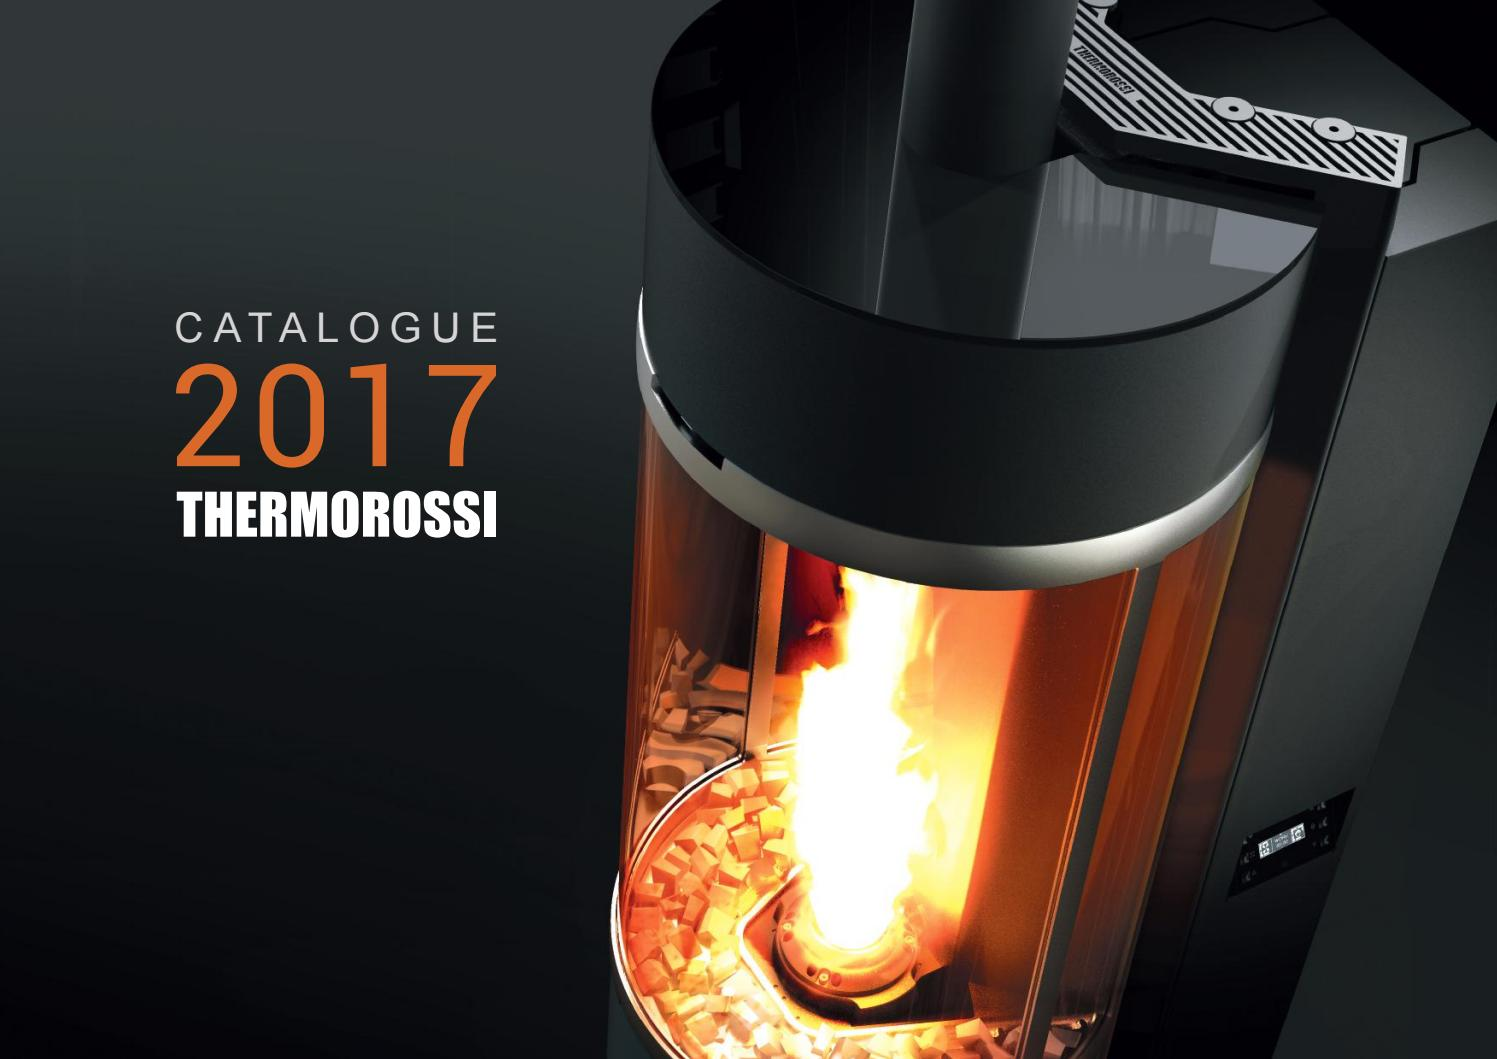 Thermorossi catalogue 2017 20160705 by dtflamme issuu for Thermorossi bellavista